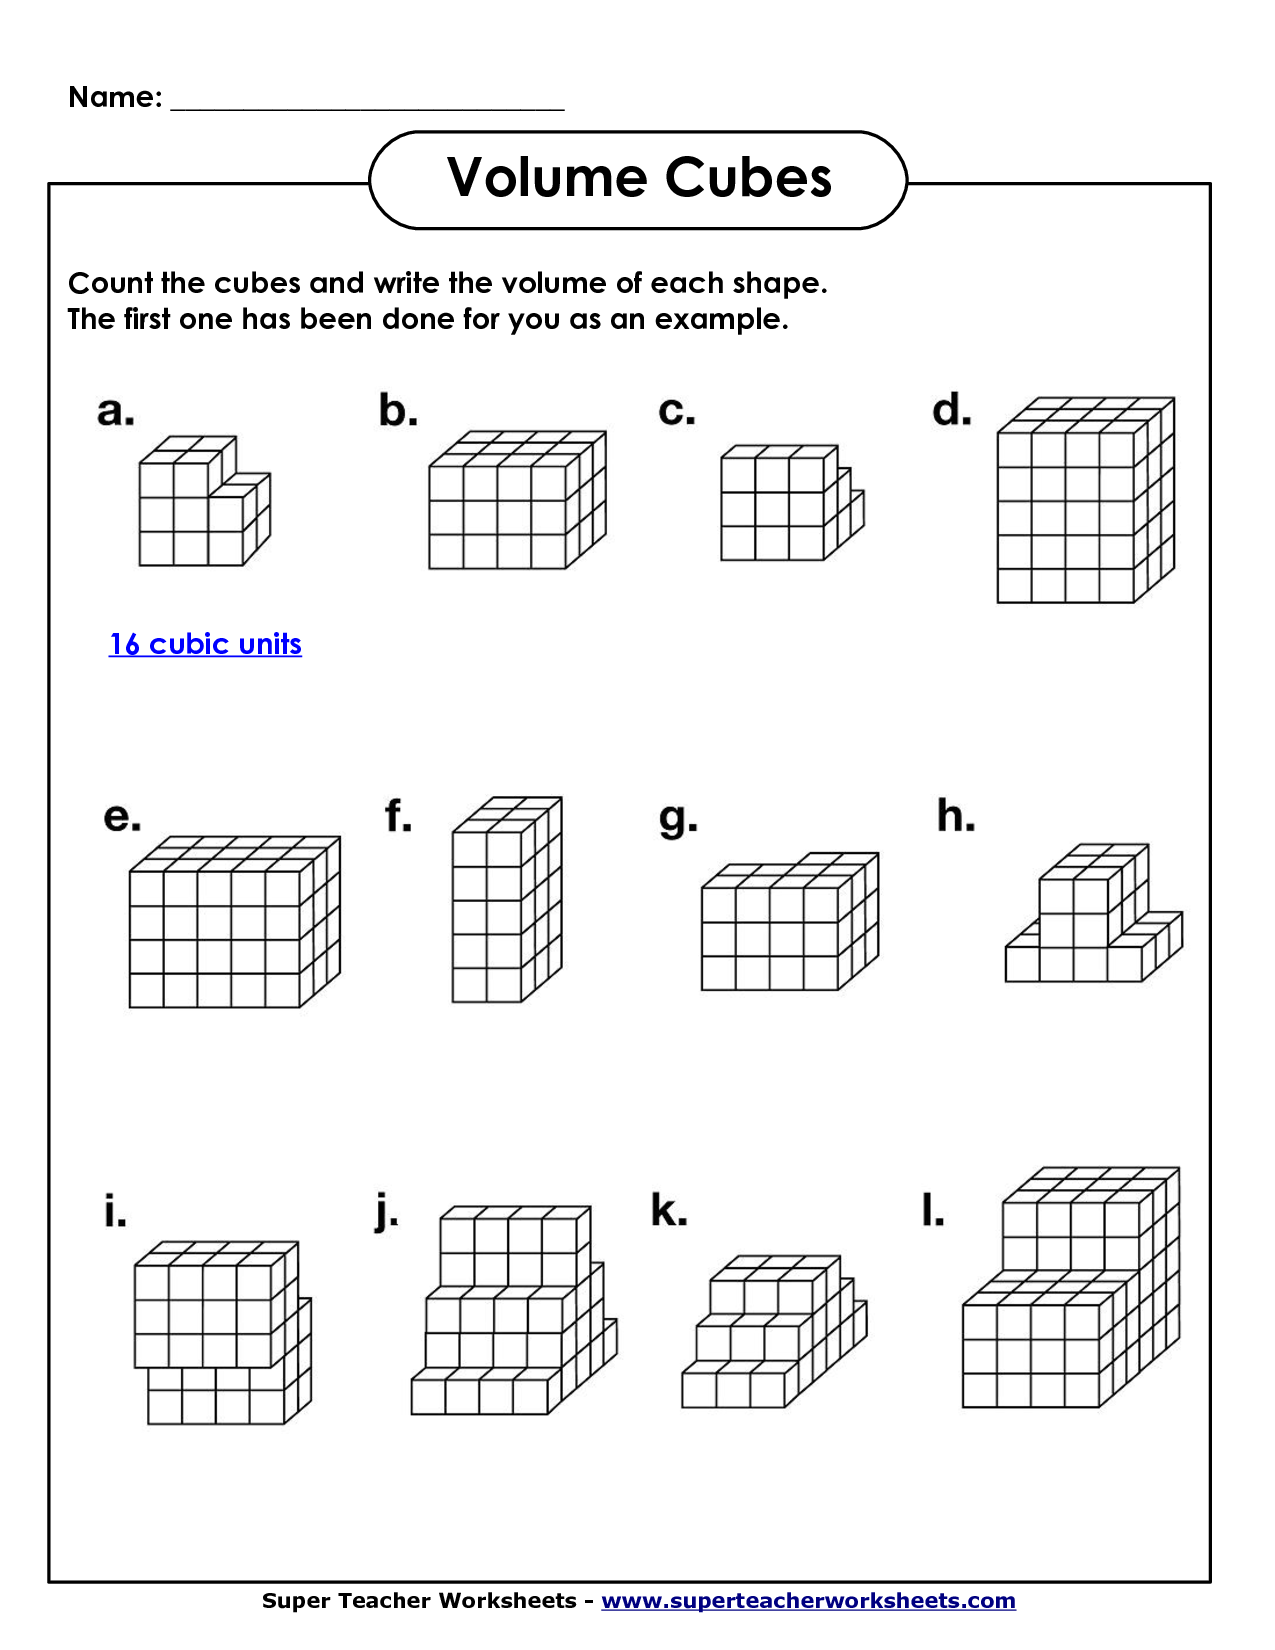 Free Worksheet Finding Volume Worksheets our 5 favorite prek math worksheets count cubes and student volume geometry with cubic units pdf